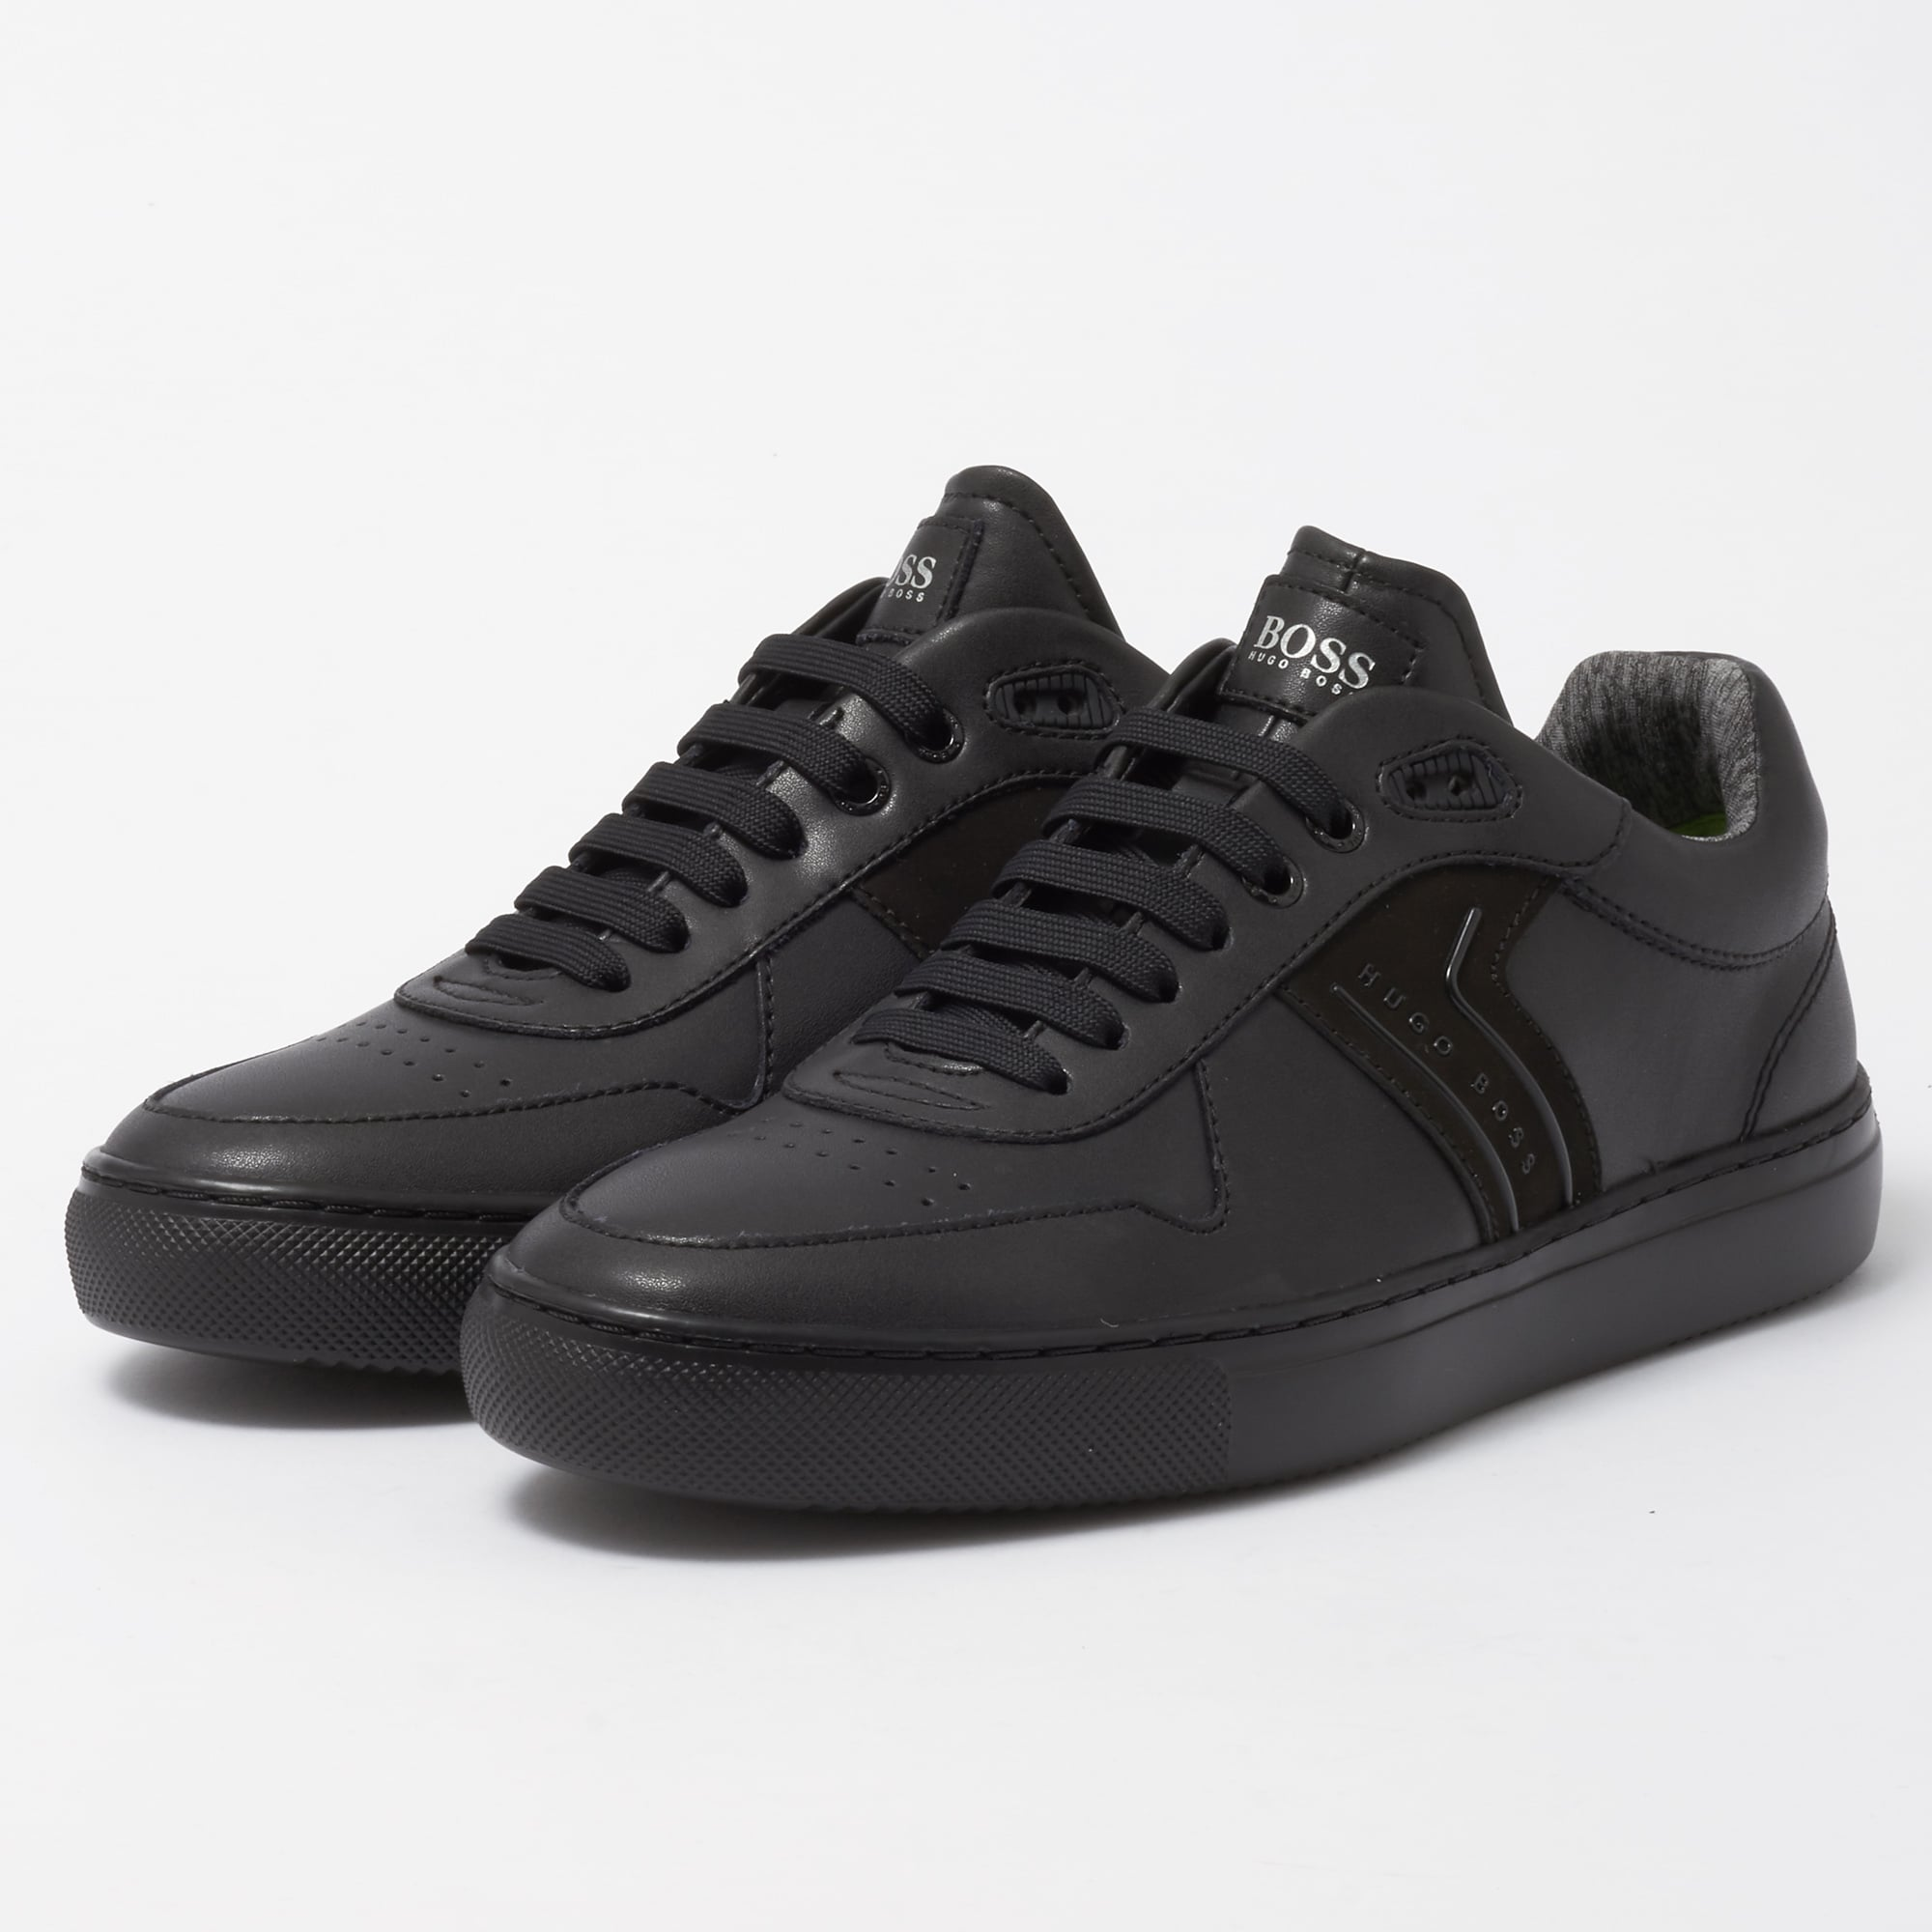 69d388bd3898 BOSS Green Black Enlight Tenn Trainers | Stuarts London | 50374612